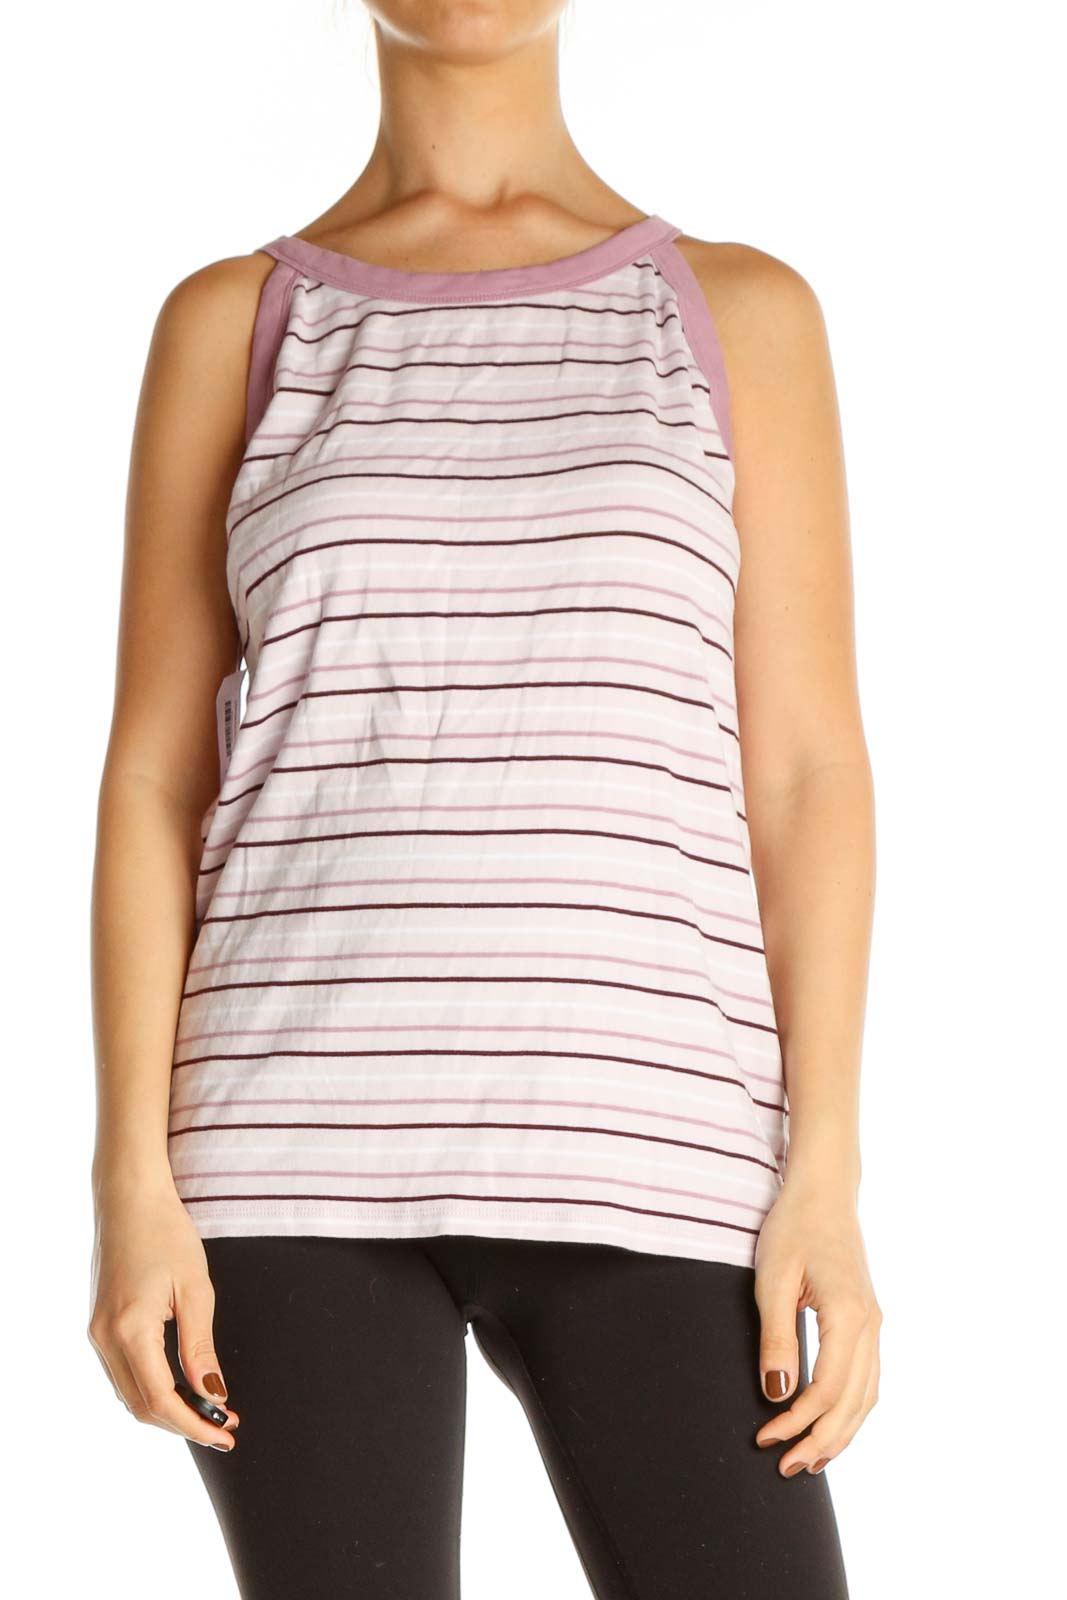 Pink Striped Casual Tank Top Front